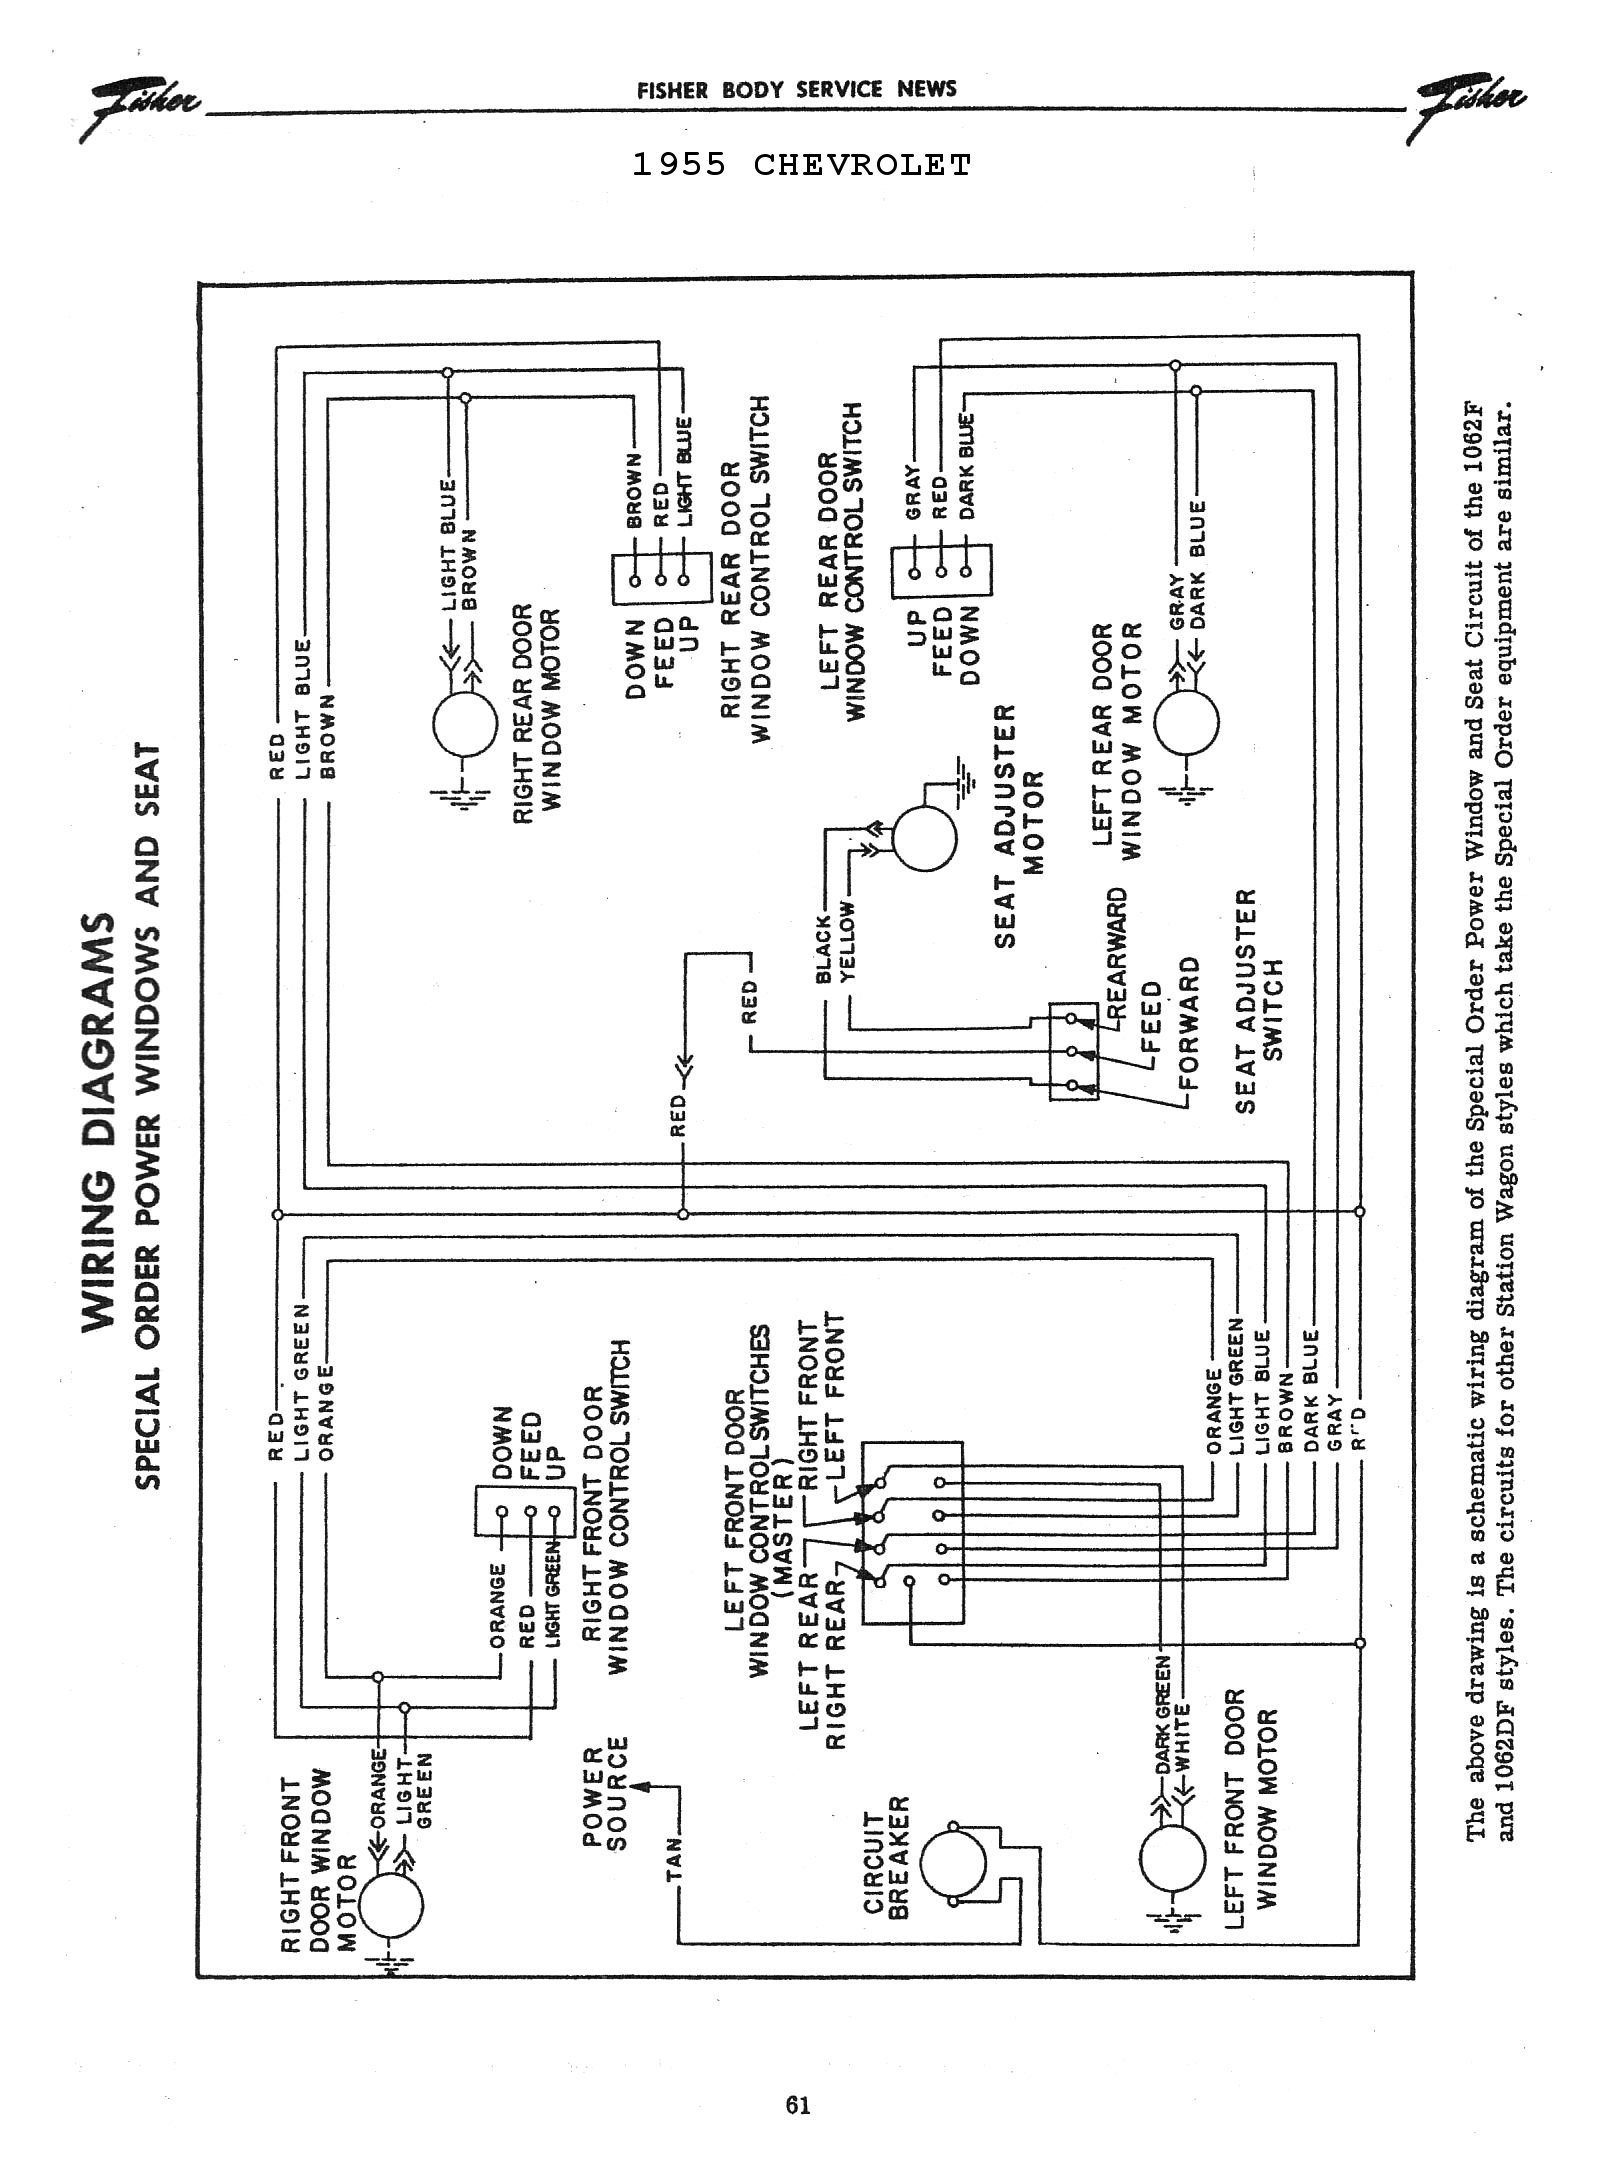 Chevy Wiring diagrams on 1957 chevy truck wiring diagram, 1955 chevy wiring diagram, 1957 chevy fuse box diagram,